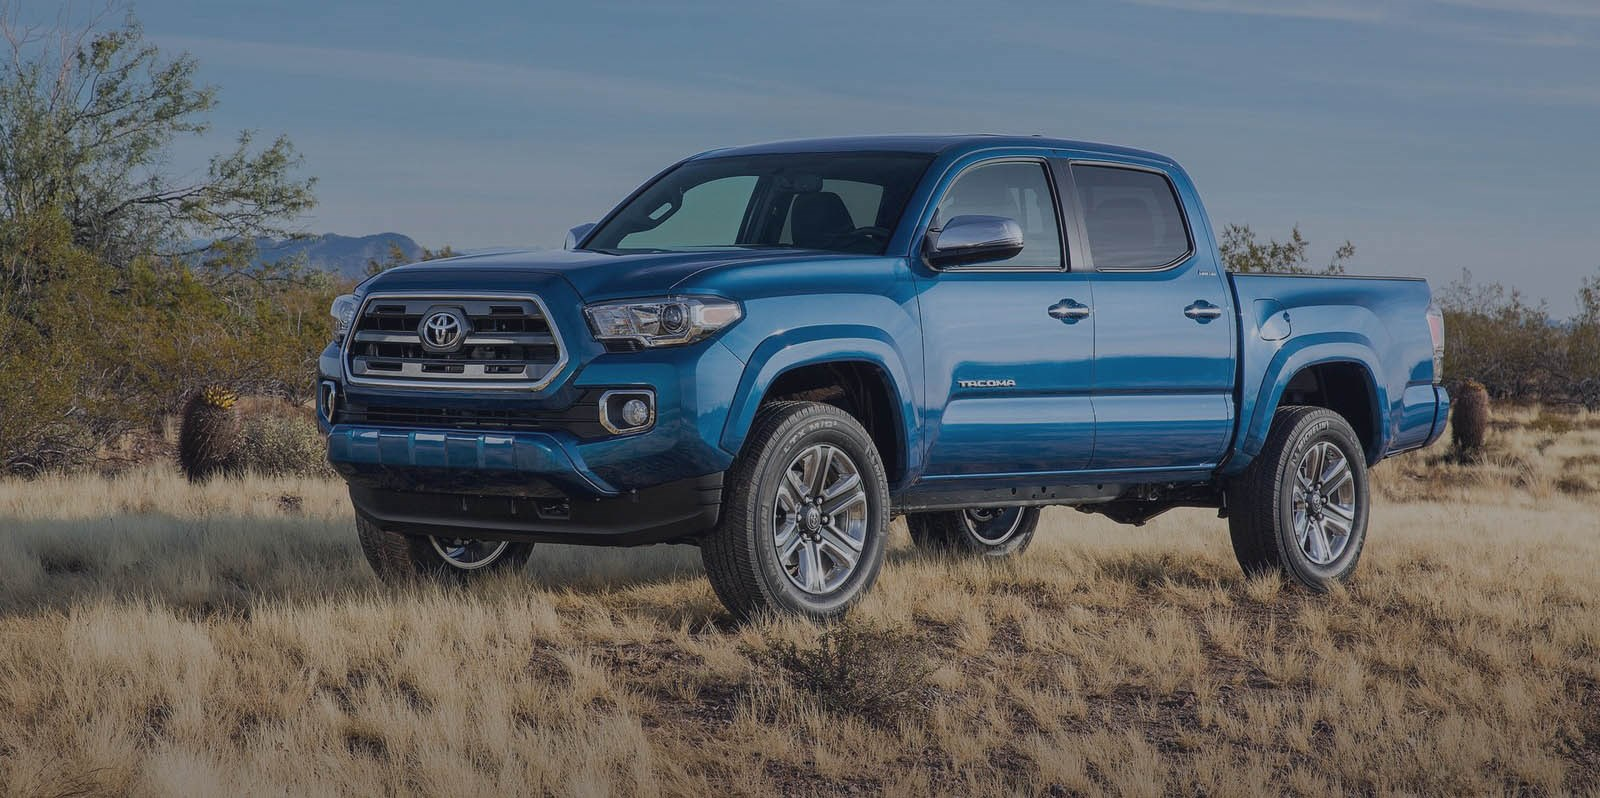 toyota tacoma for sale in Los angeles